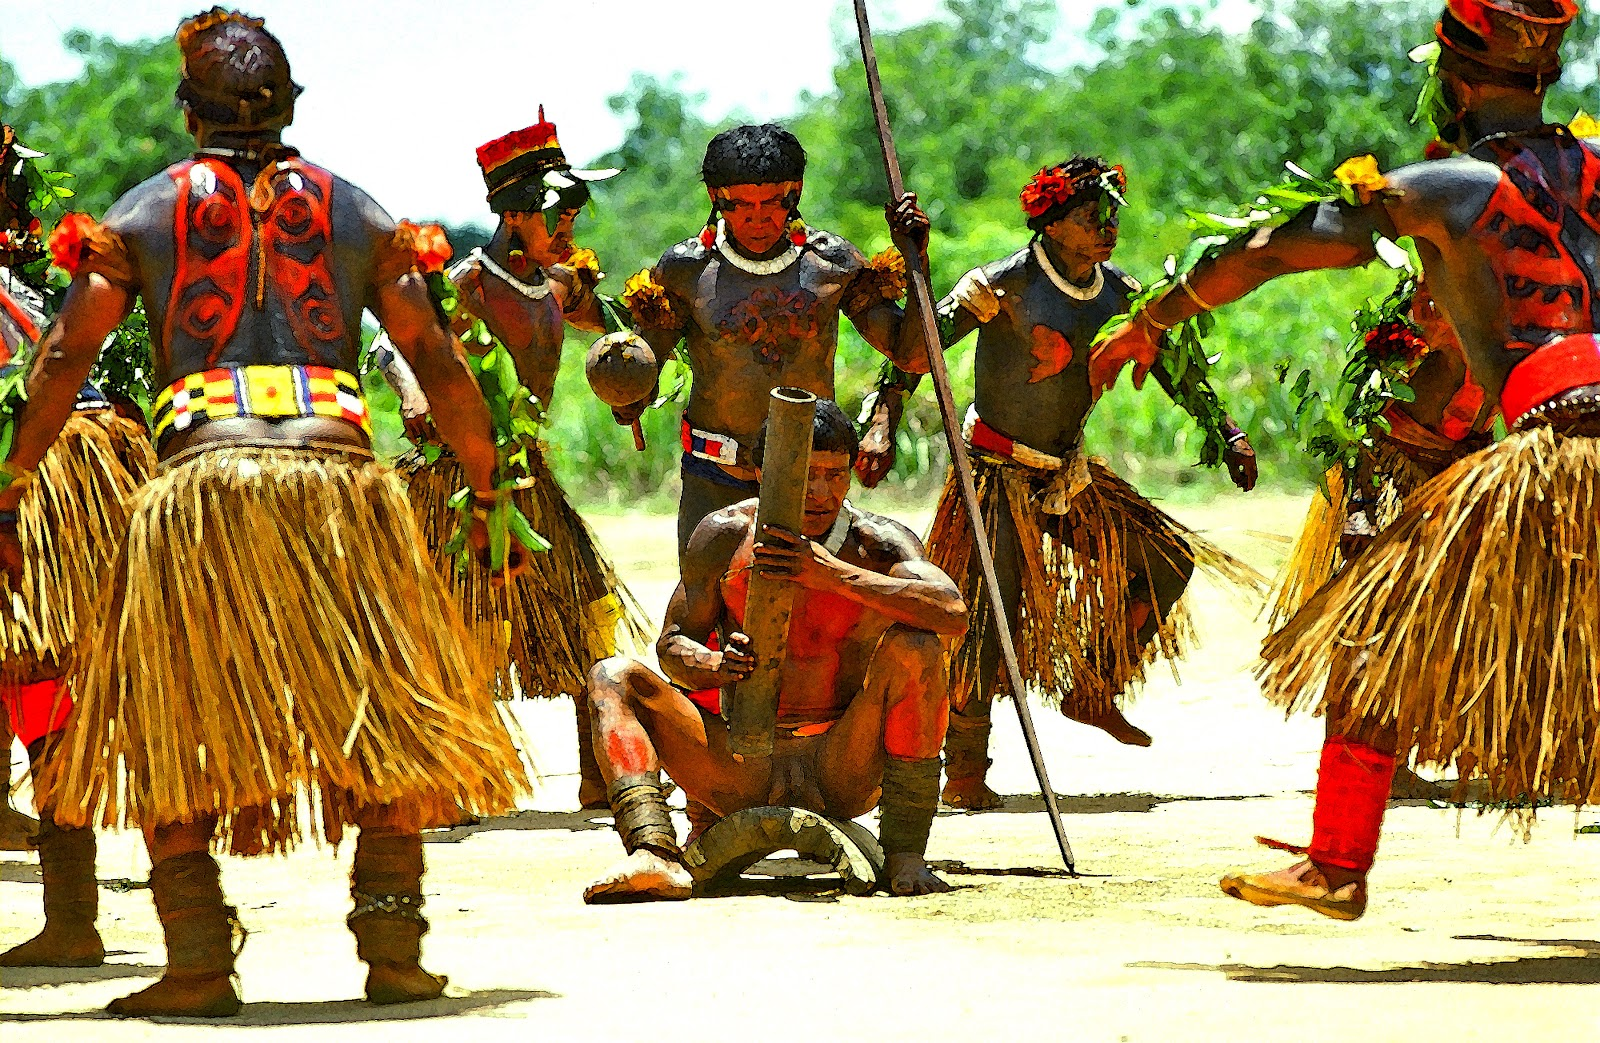 an analysis of the kalapalo indians of central brazil Information on the native american tribes and languages of brazil, with recommended books on brazilian indians and their culture.